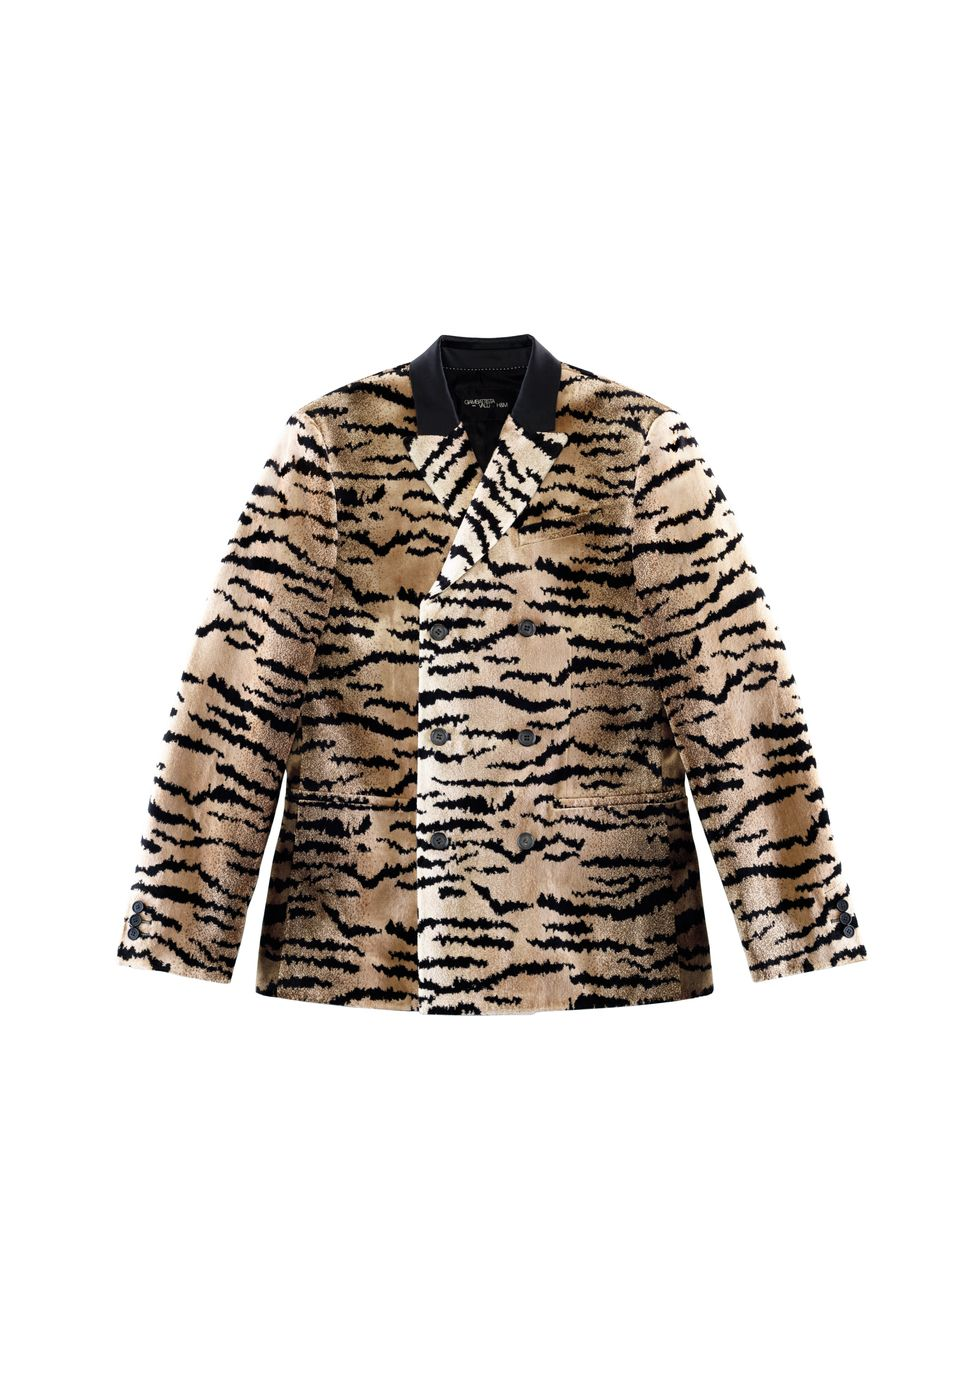 GV Tiger Velvet Jacket